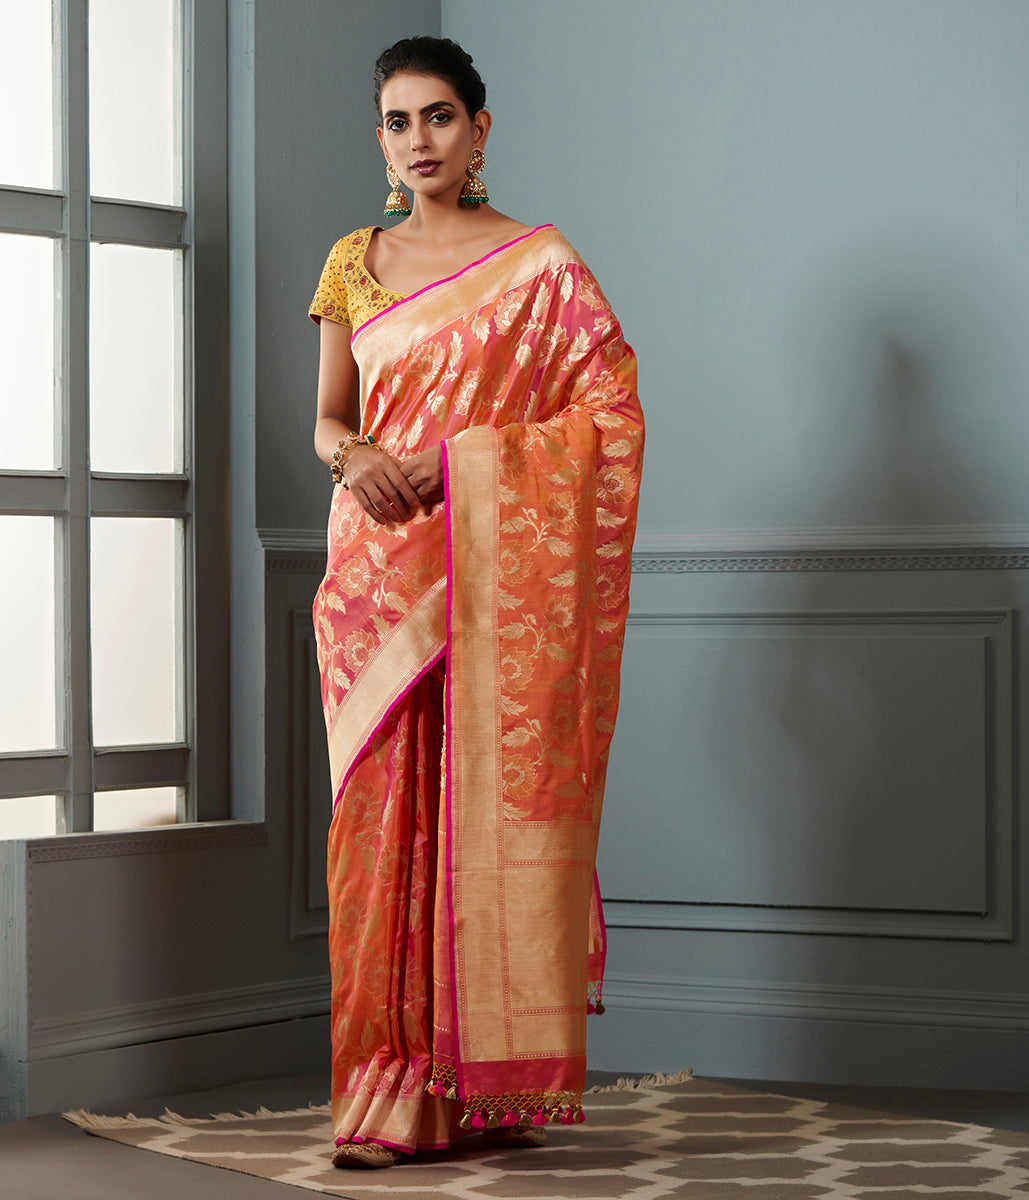 Handwoven Banarasi saree in Oramge and peach dual tone with floral jaal